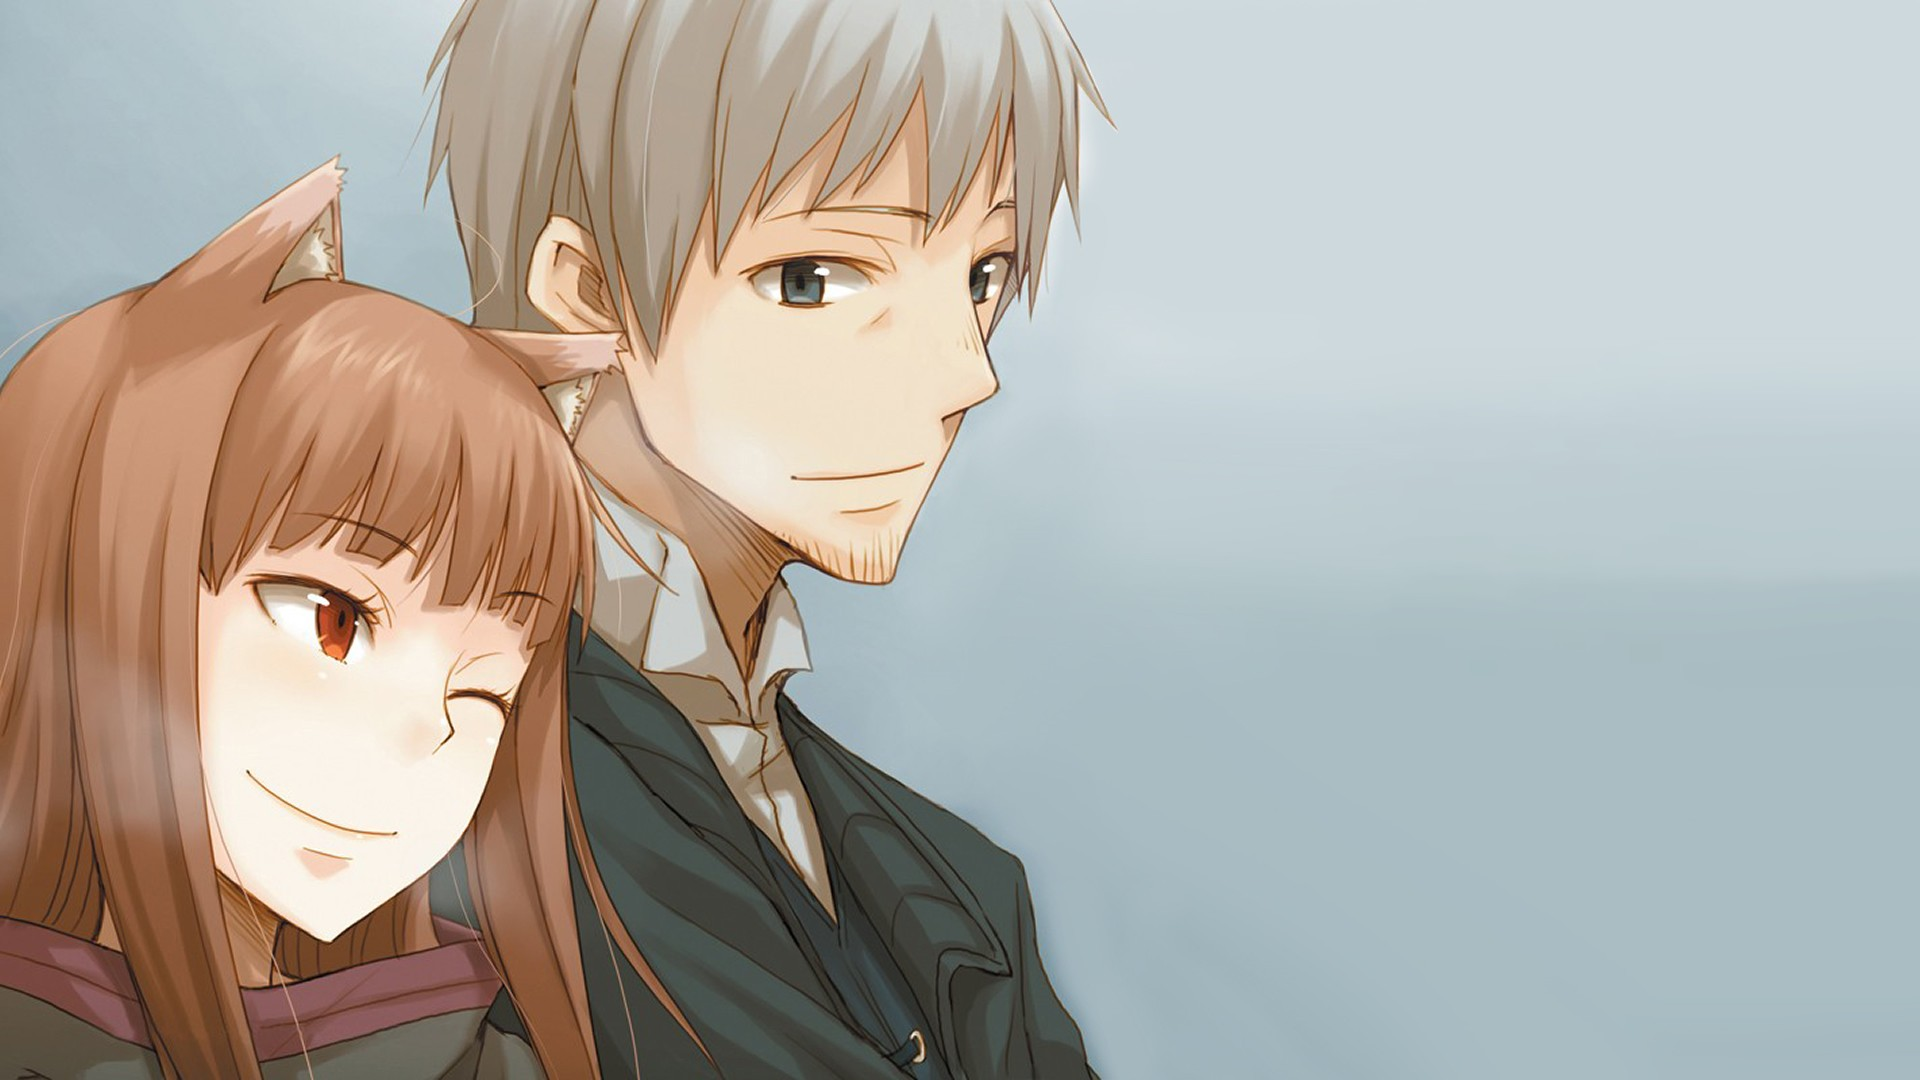 Spice And Wolf Wallpaper Download Free Full Hd Backgrounds For